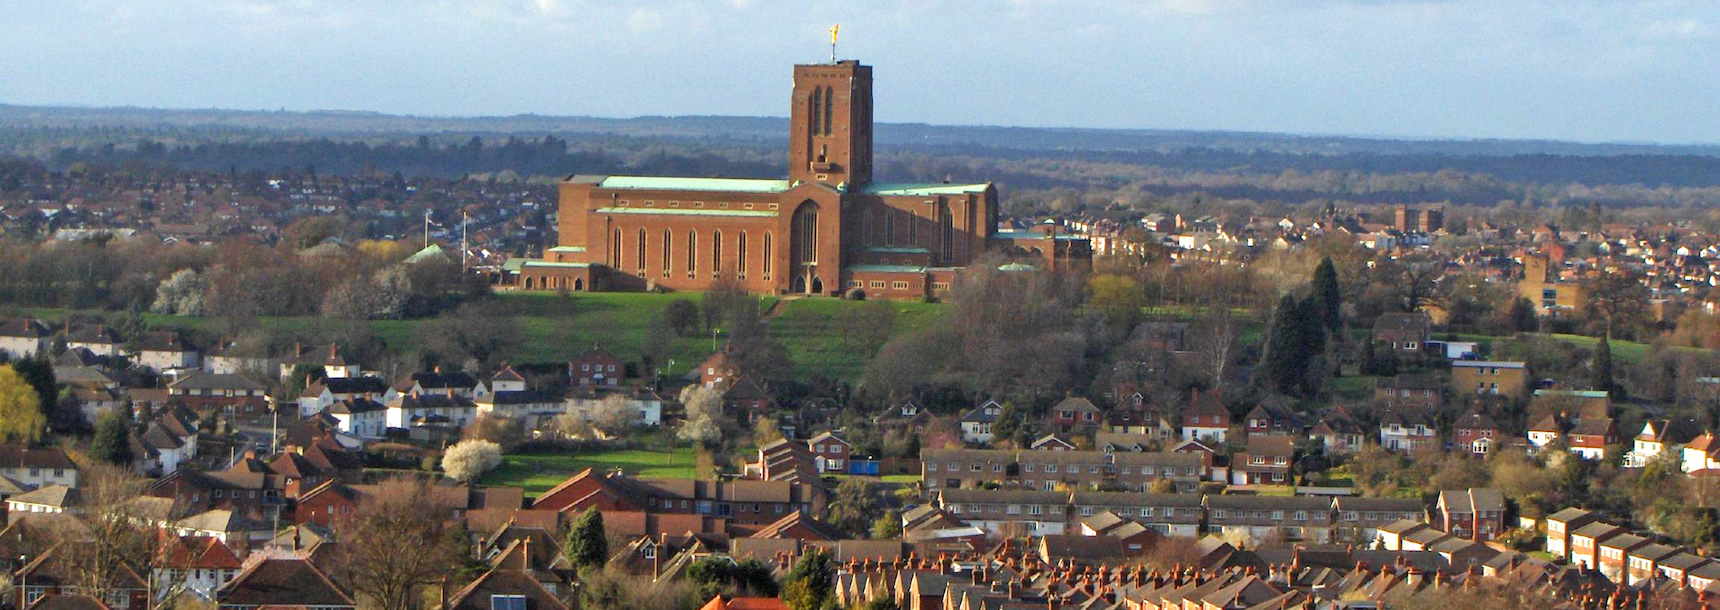 Guildford town and cathedral